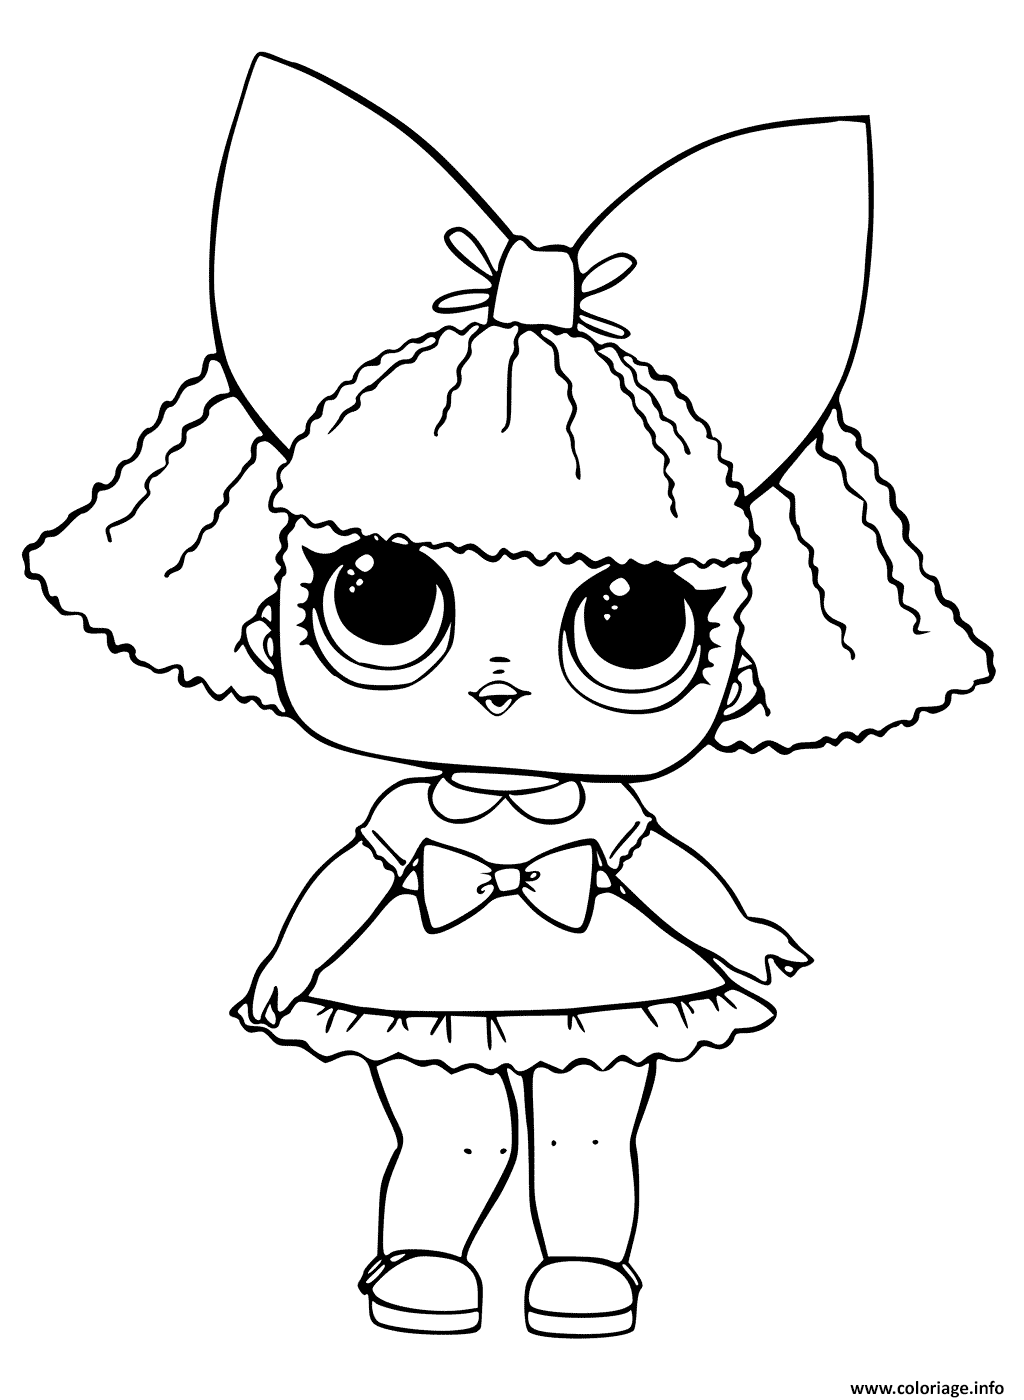 Coloriage lol doll printable dessin - Dessins a colorier gratuit ...